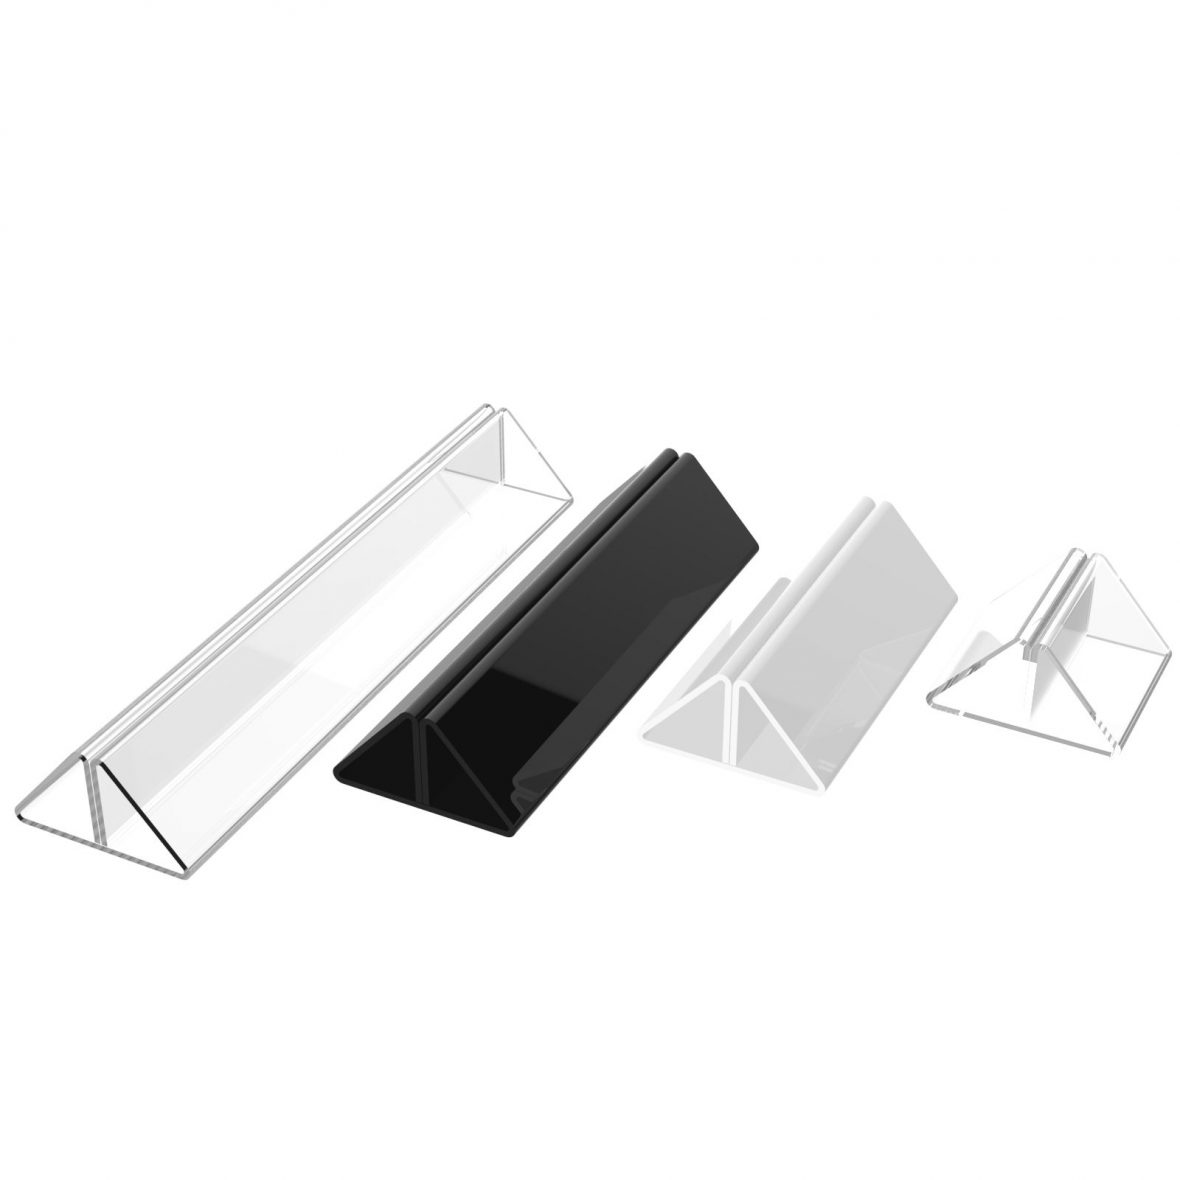 Acrylic Doublesided Card Tent Holders PlasticsLand - Table tent stands